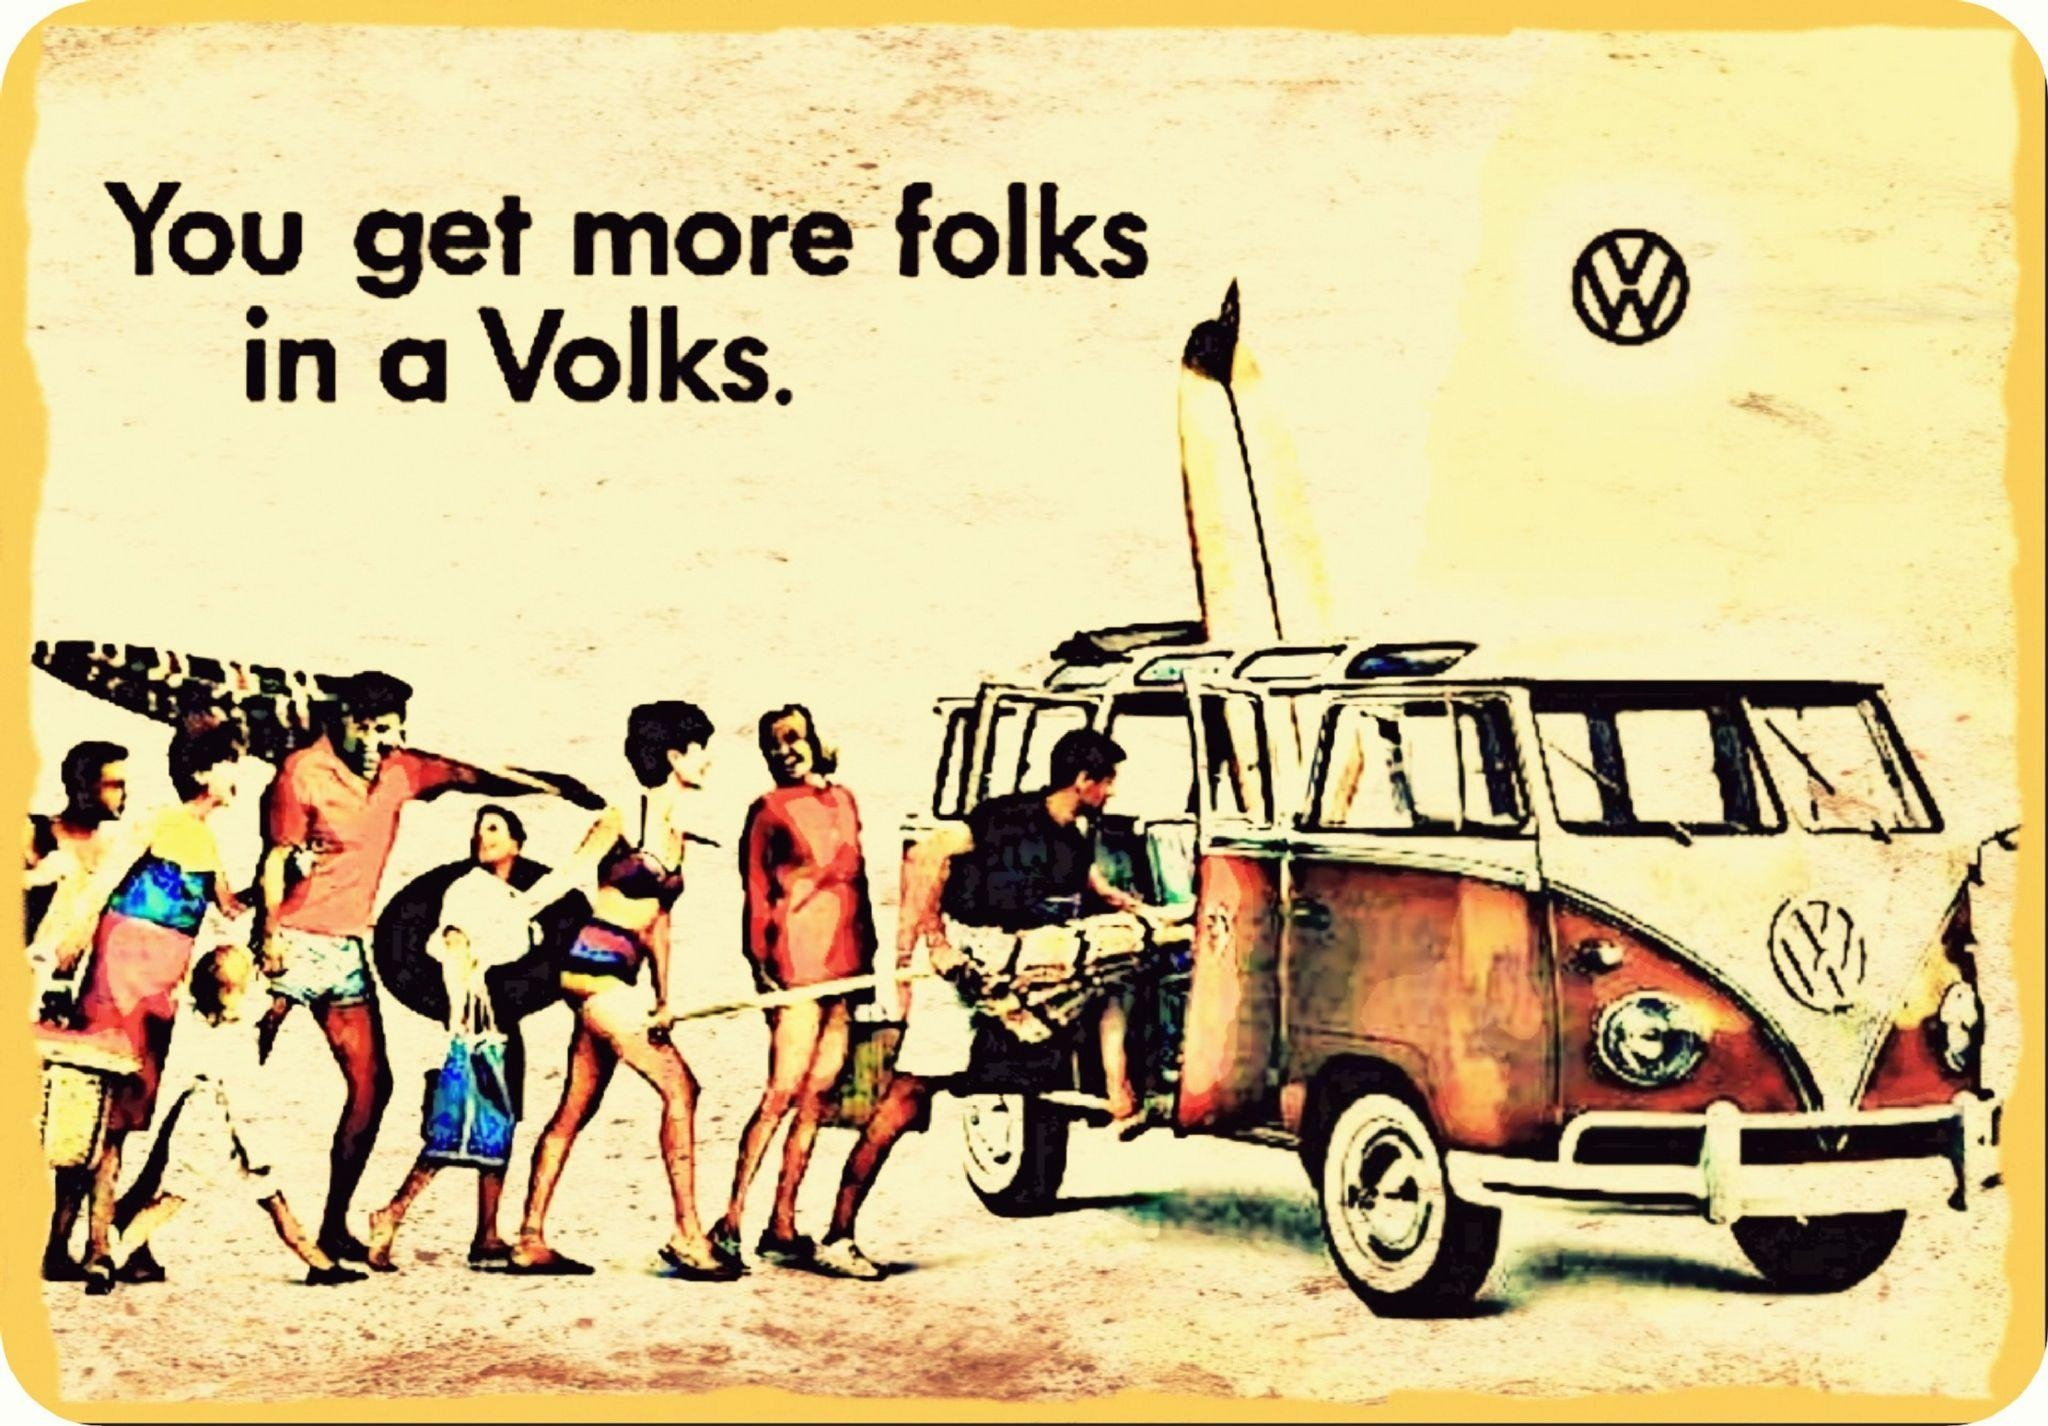 Folks Vw Camper Vintage Metal Wall Plaque From My Original Art Work Regarding Campervan Metal Wall Art (Image 6 of 20)